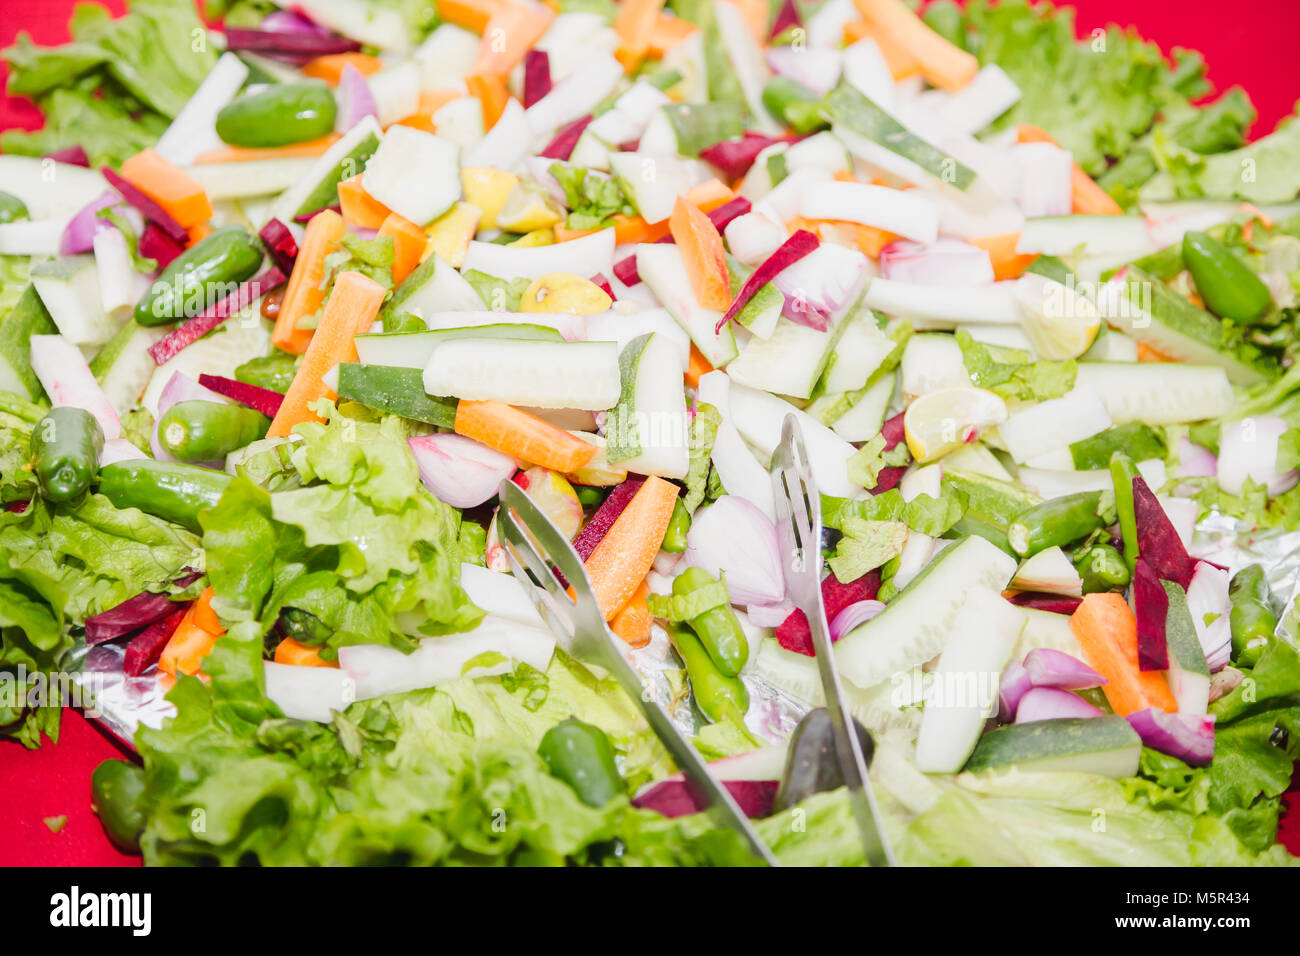 Mixed Green Vegetables Salad with Tounge - Stock Image